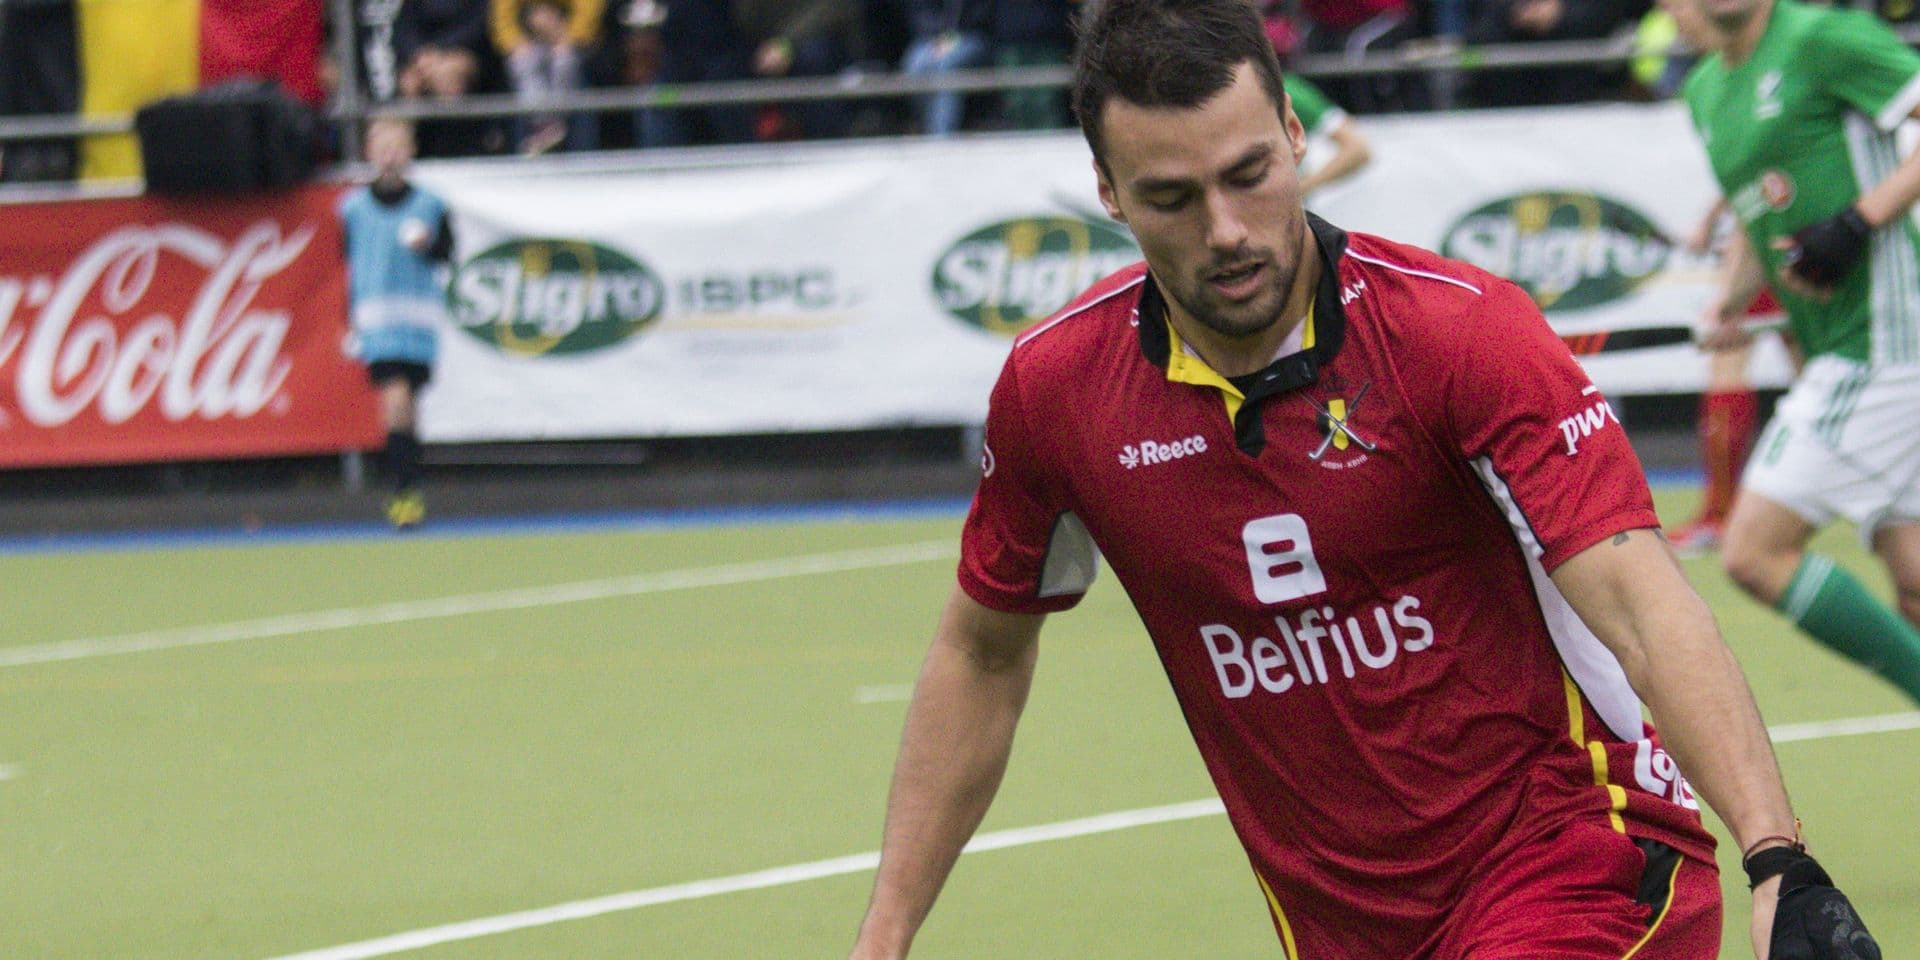 Belgium's Simon Gougnard pictured in action during a friendly hockey game between Belgian national hockey team the Red Lions and Ireland, Saturday 10 November 2018 in Brussels. BELGA PHOTO SEBASTIEN TECHY